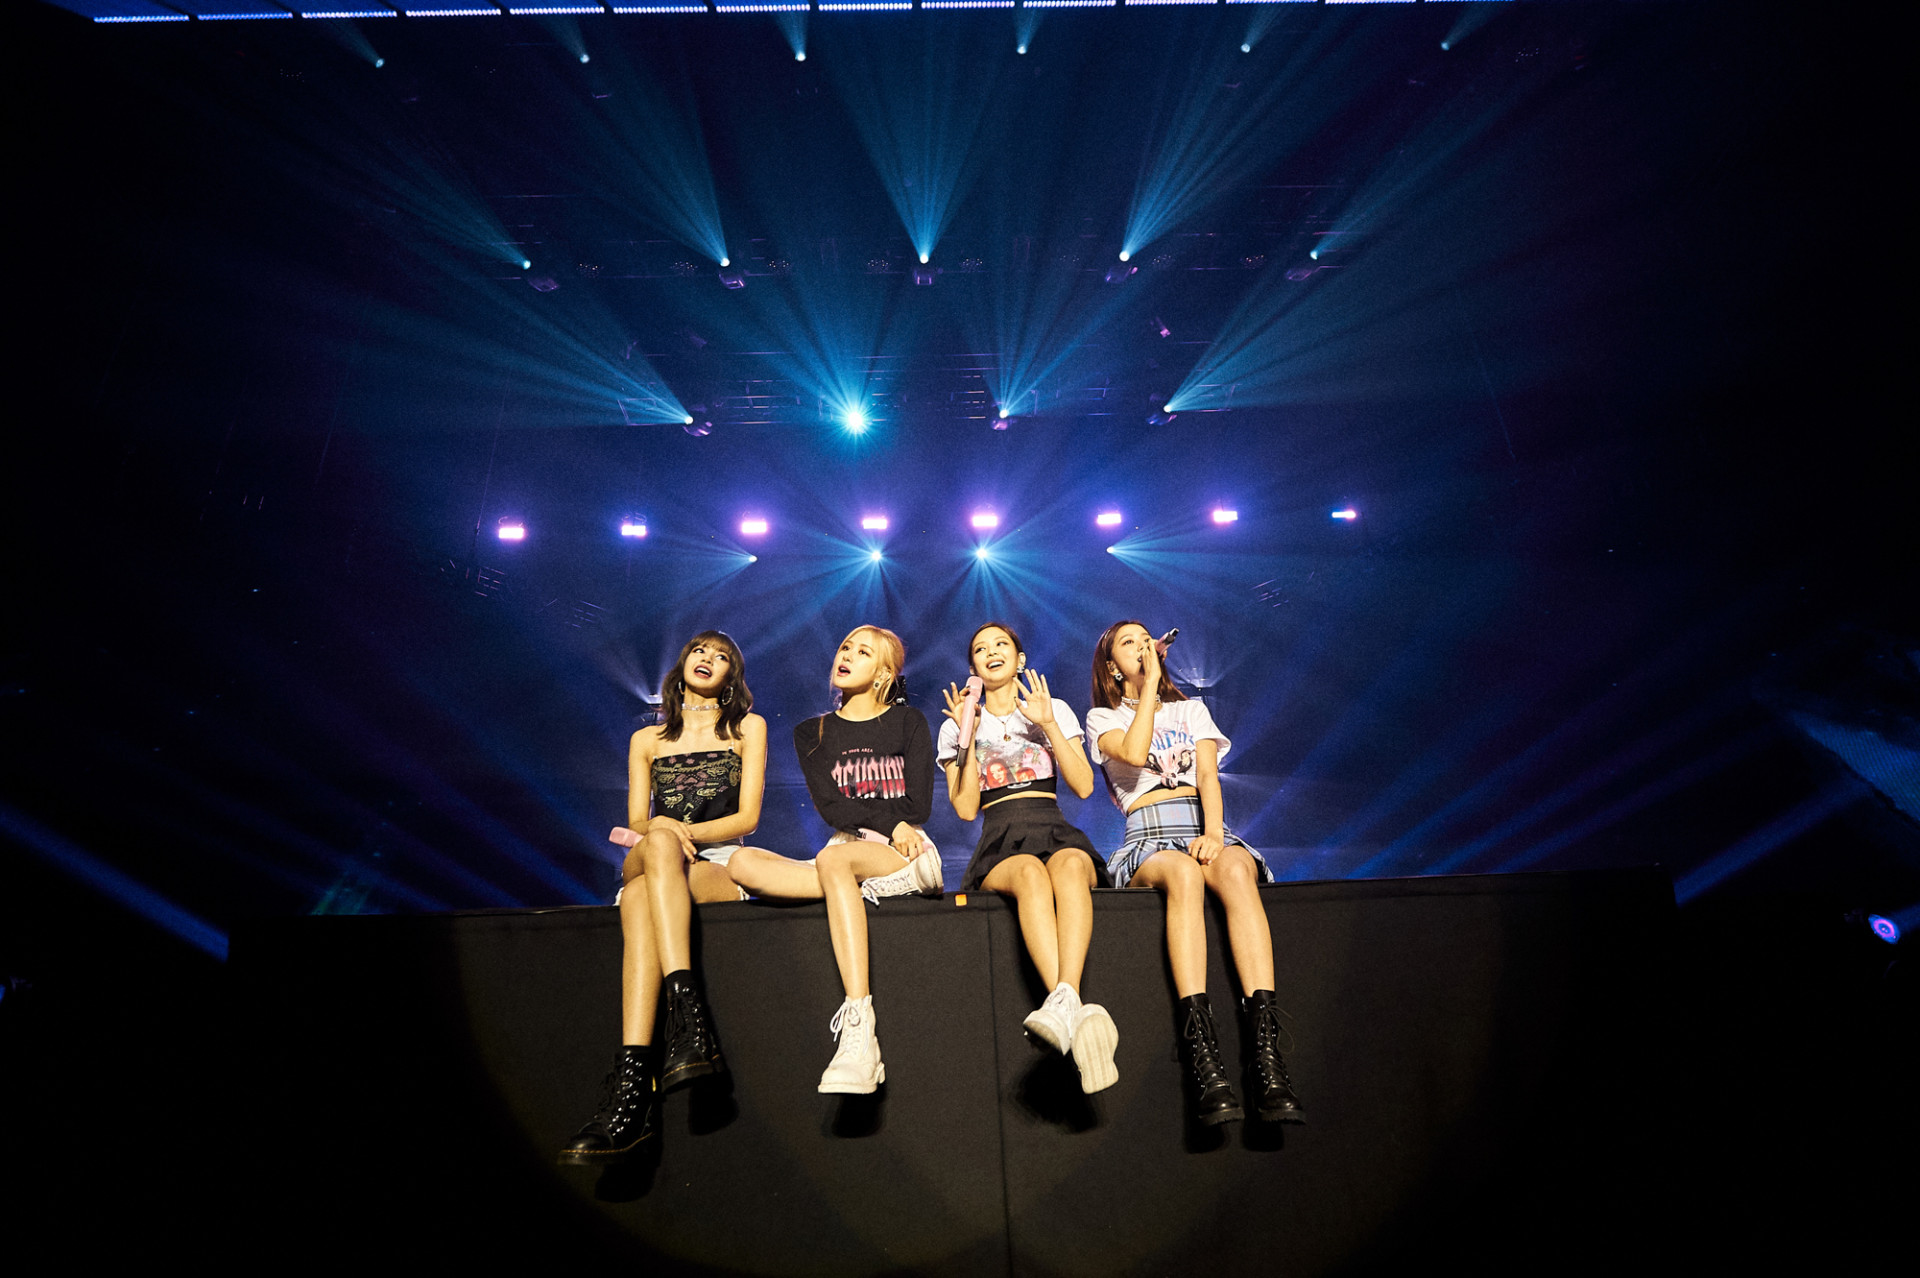 LIVE REVIEW: BLACKPINK Bring Incredible Production To Amsterdam's